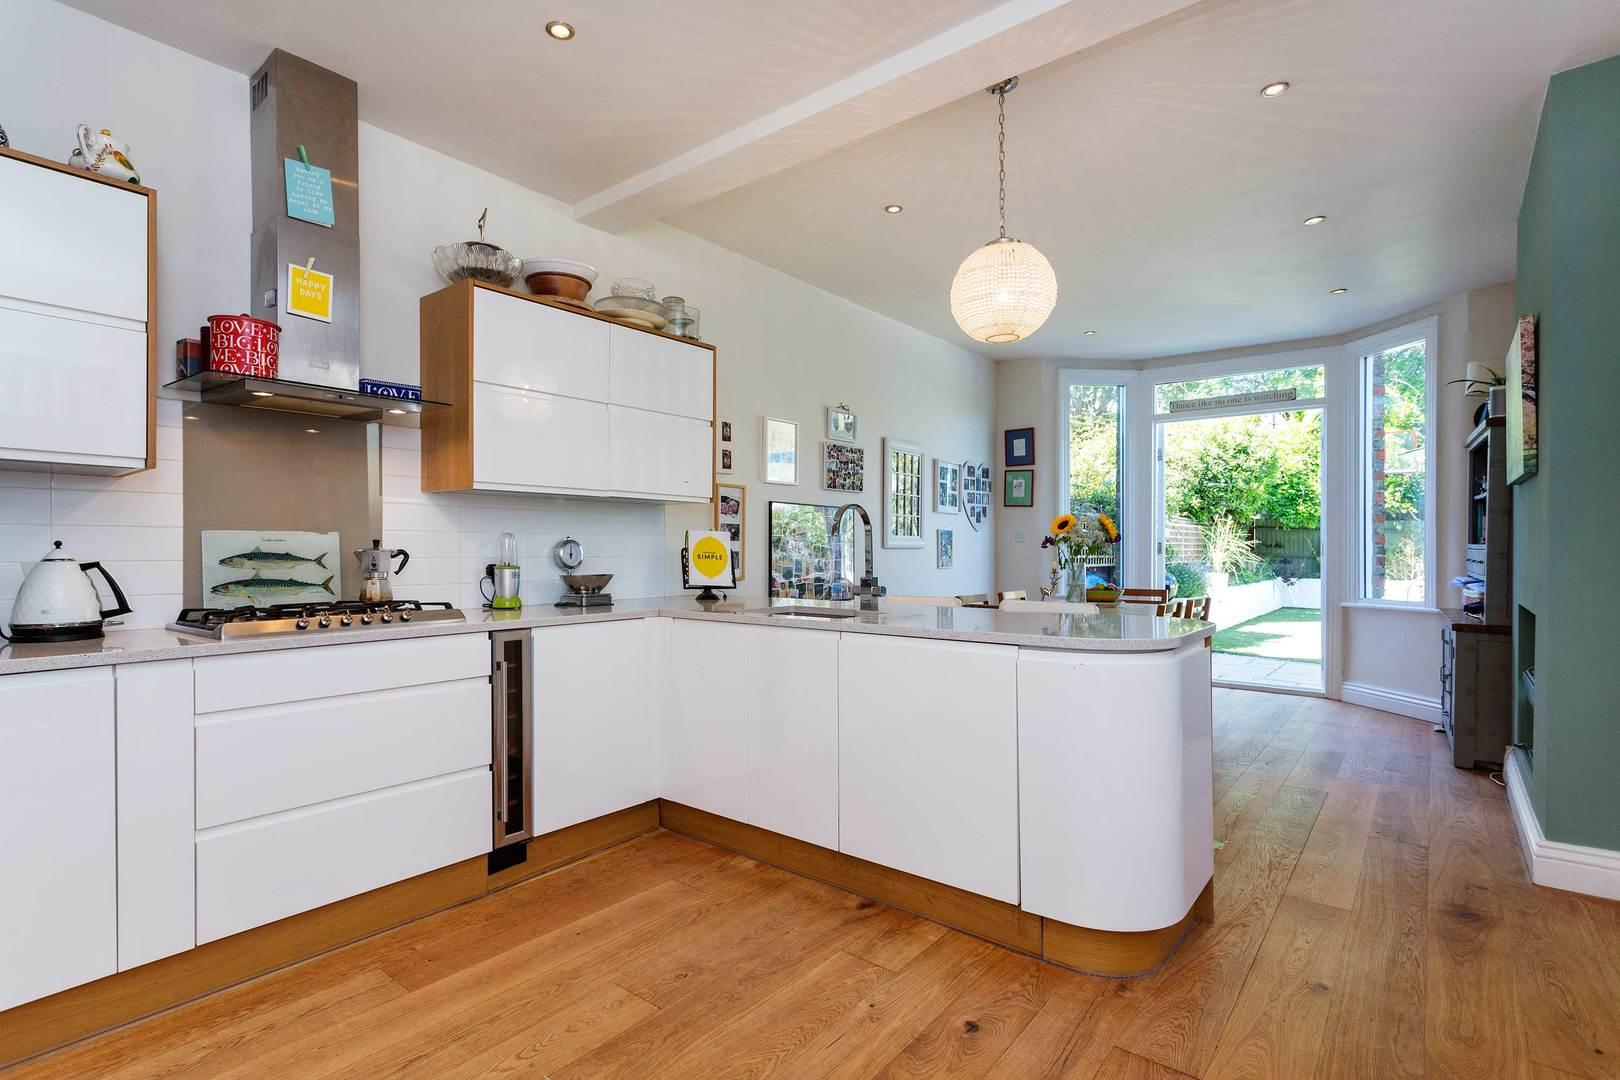 Property Image 1 - Tranquil Riverside Twickenham Home Perfect for Families